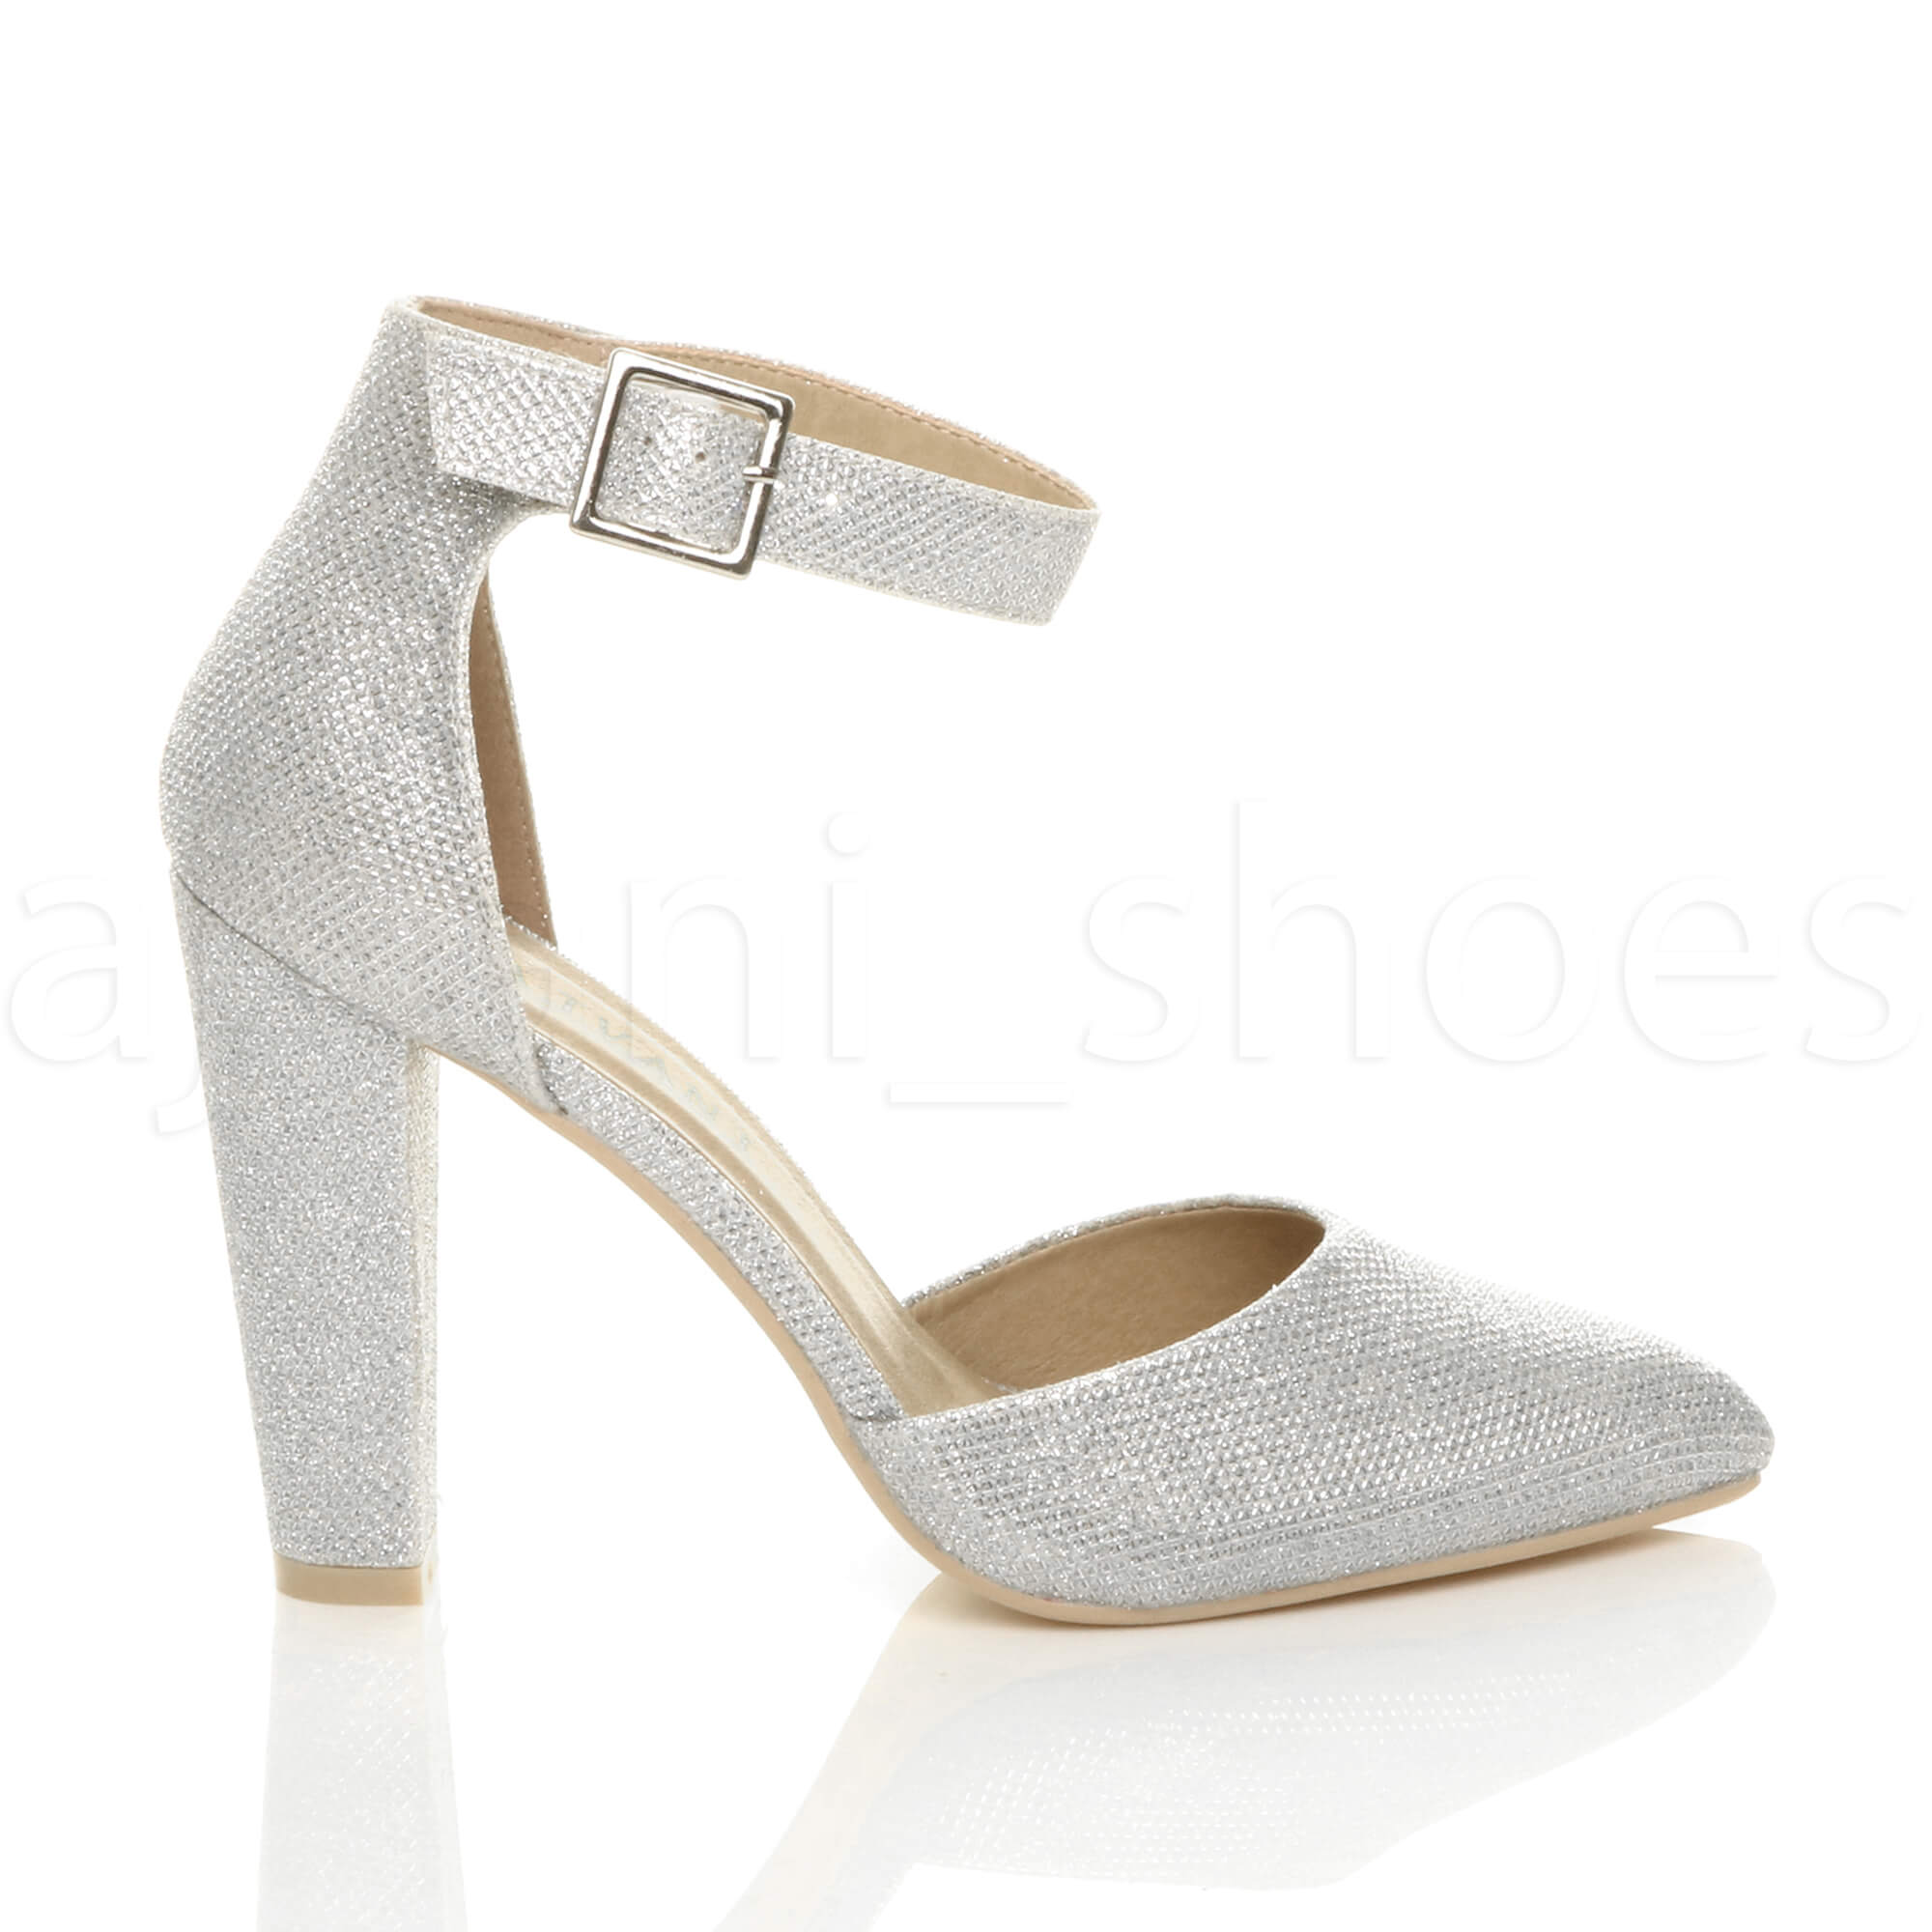 WOMENS-LADIES-HIGH-BLOCK-HEEL-ANKLE-STRAP-BUCKLE-POINTED-COURT-SHOES-SIZE thumbnail 178